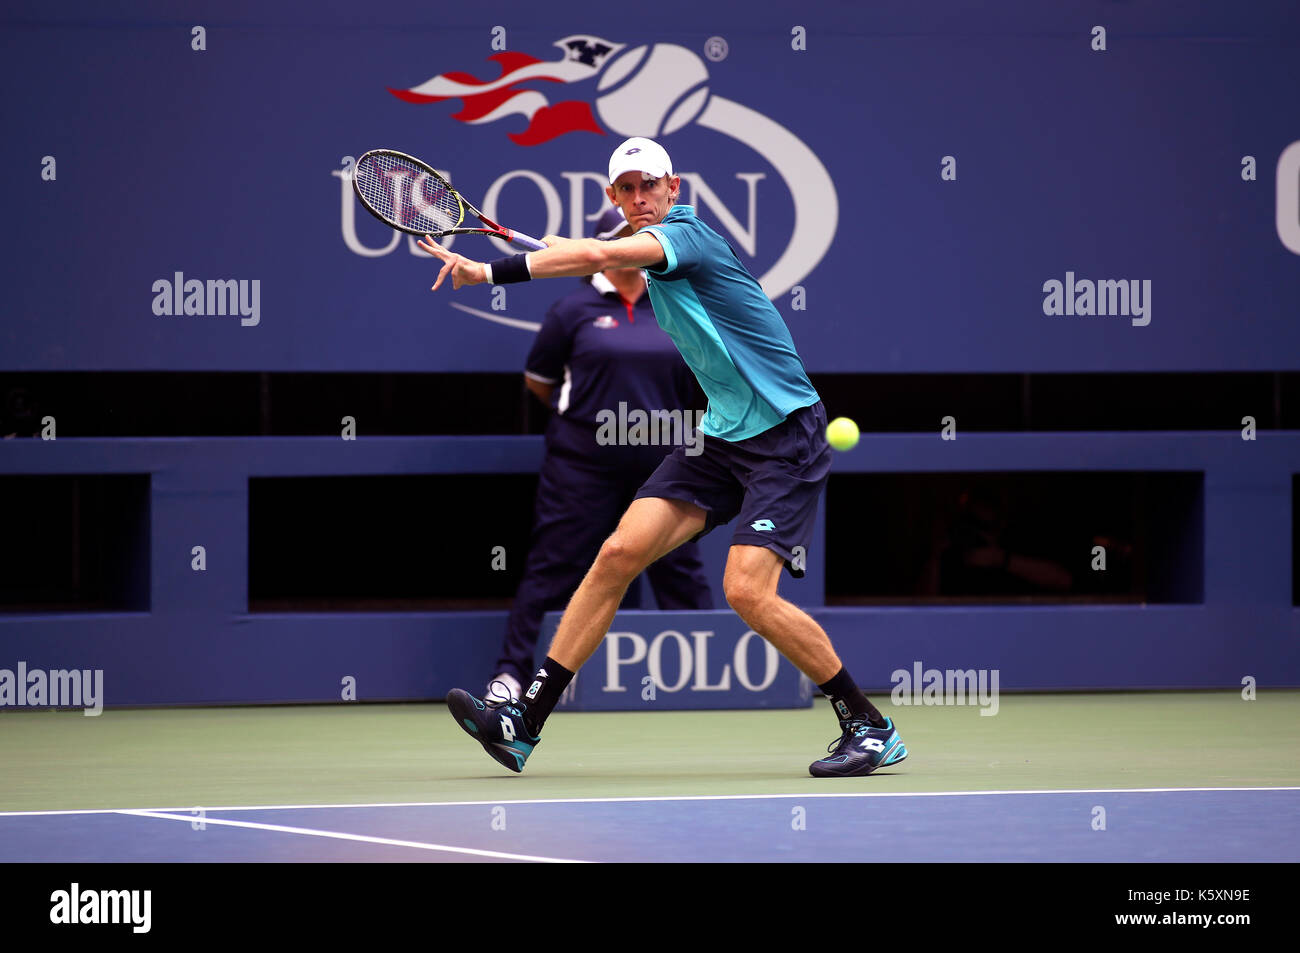 New York, United States. 10th Sep, 2017. US Open Tennis: New York, 10 September, 2017 - Kevin Anderson of South Africa sets up a forehand to Rafael Nadal of Spain during the US Open Men's singles final in Flushing Meadows, New York. Nadal won the match in three sets to win the title Credit: Adam Stoltman/Alamy Live News - Stock Image